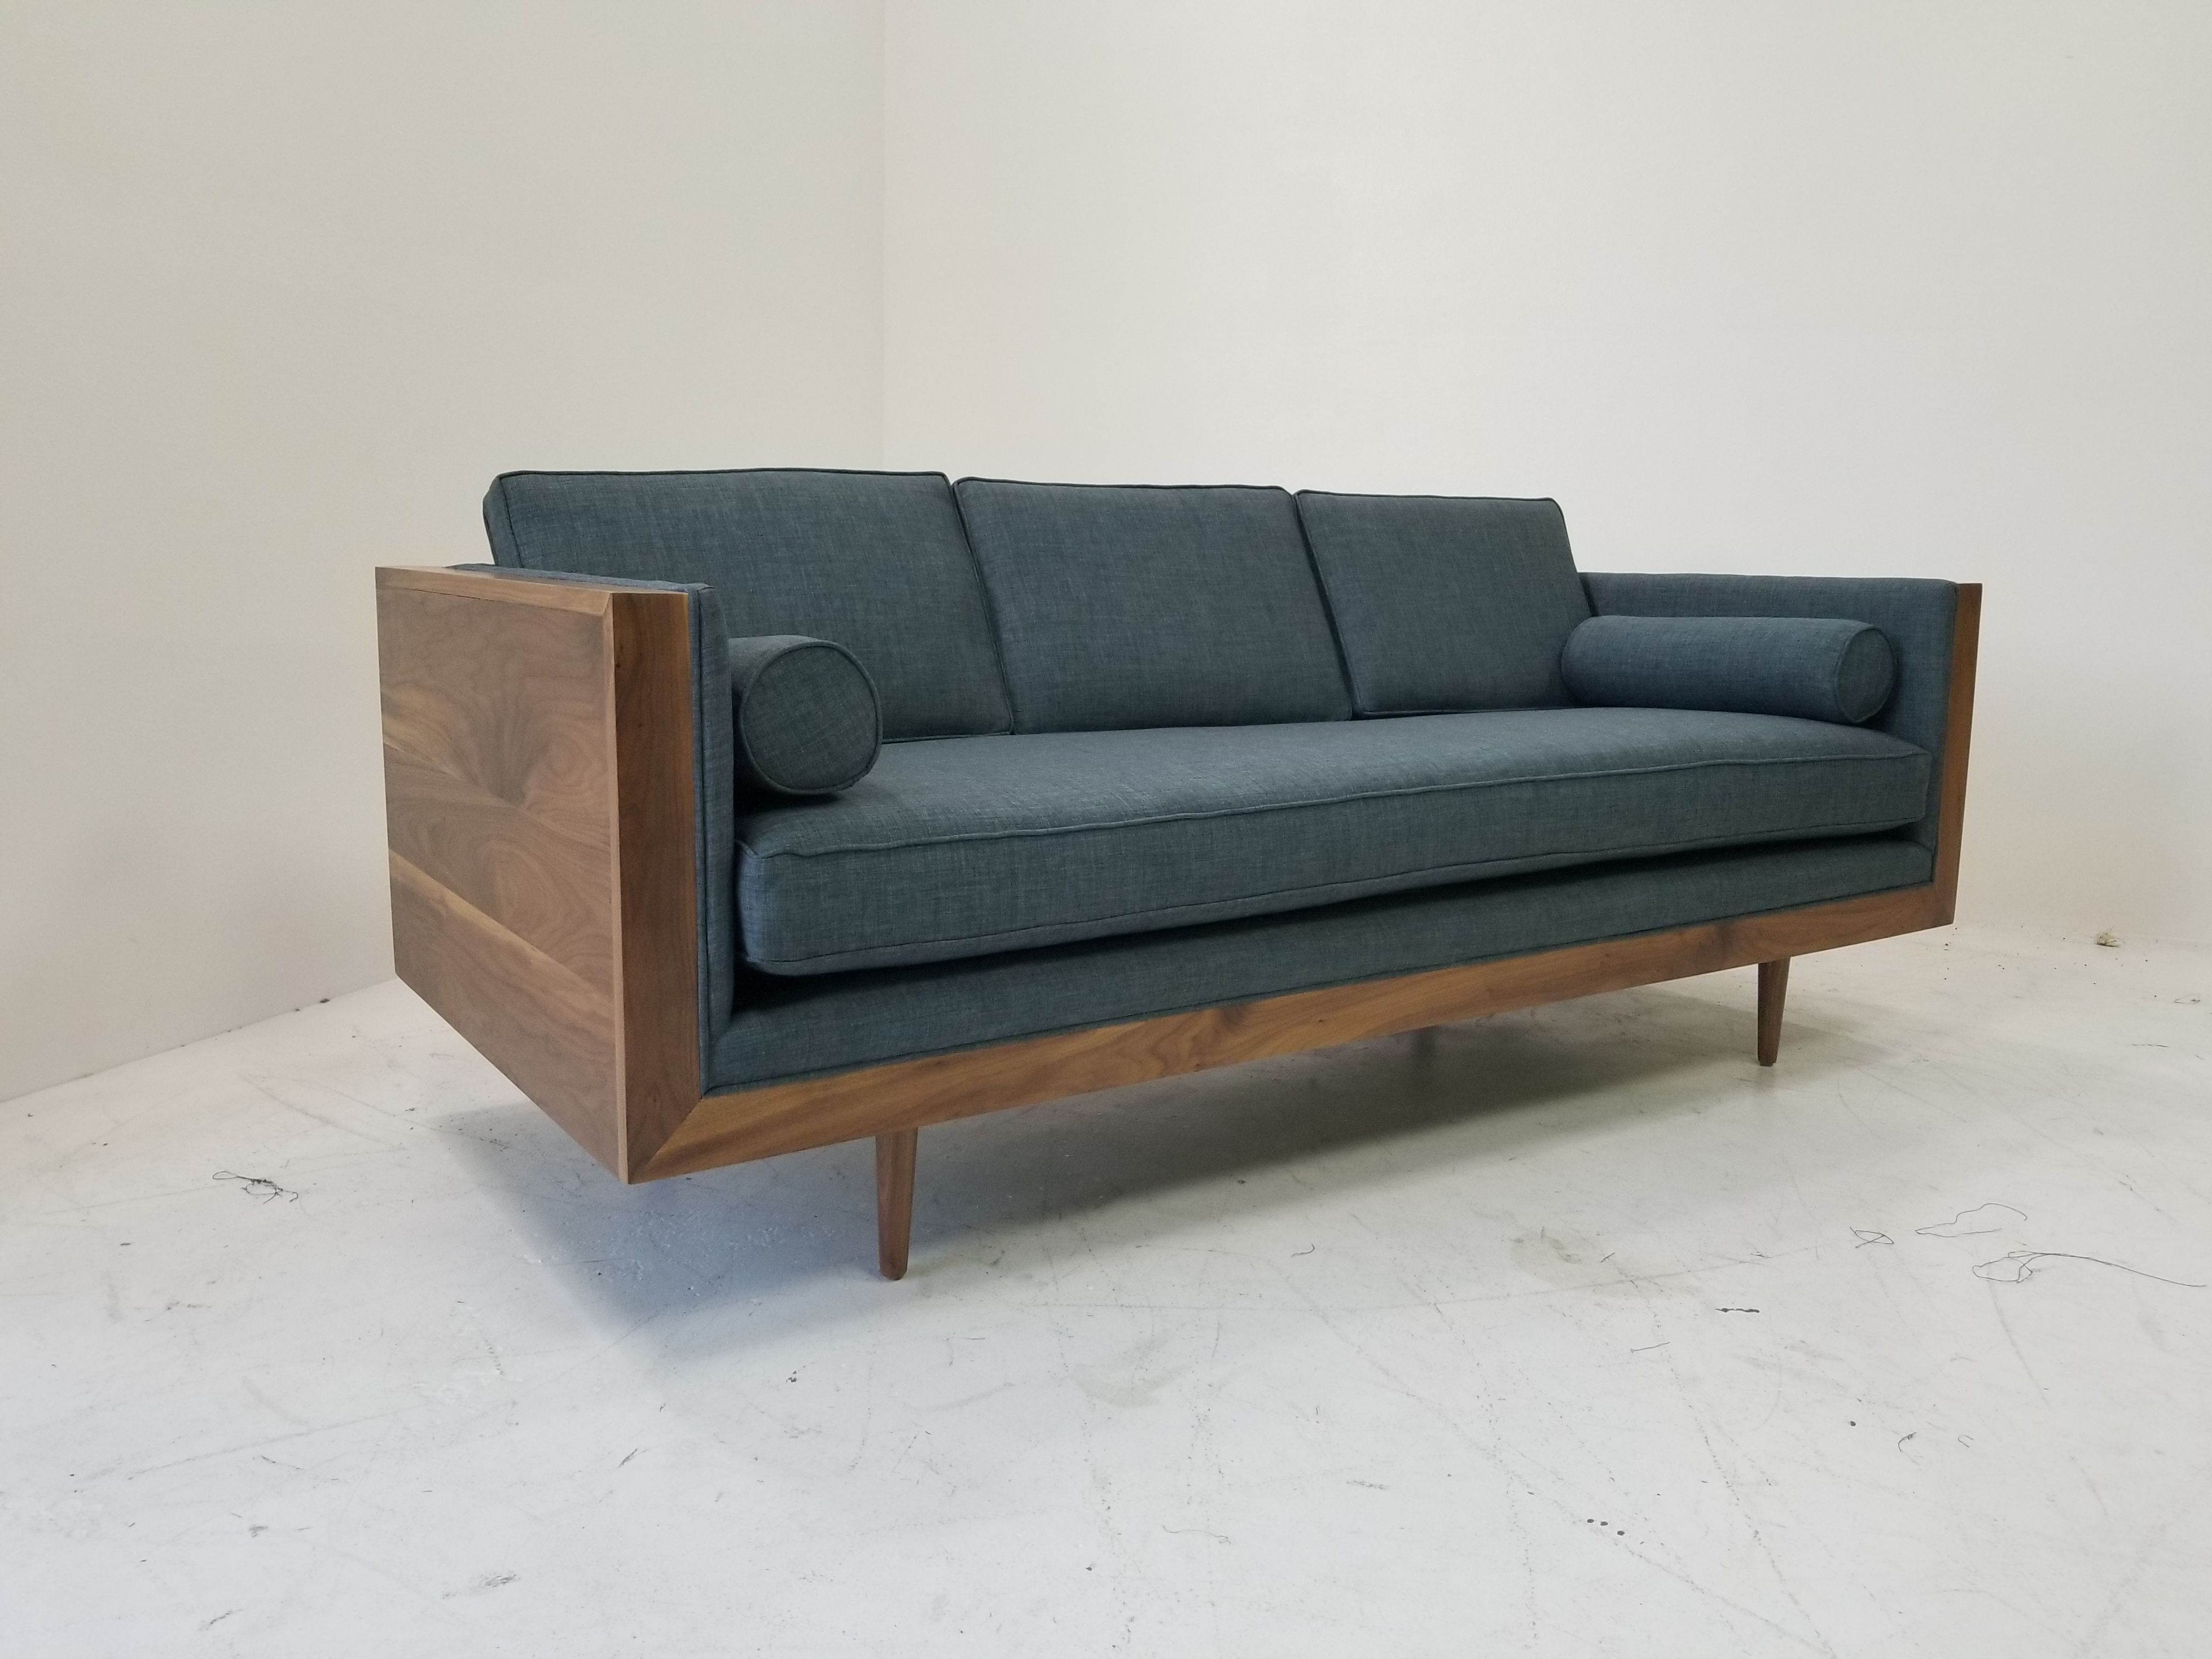 Skyline Sofa The Skyline Sofa Has Beautiful Wood Framing That Adds A Rustic Warmth To Your Living Room While Living Room Furniture Sofas Sofa Blue Home Decor